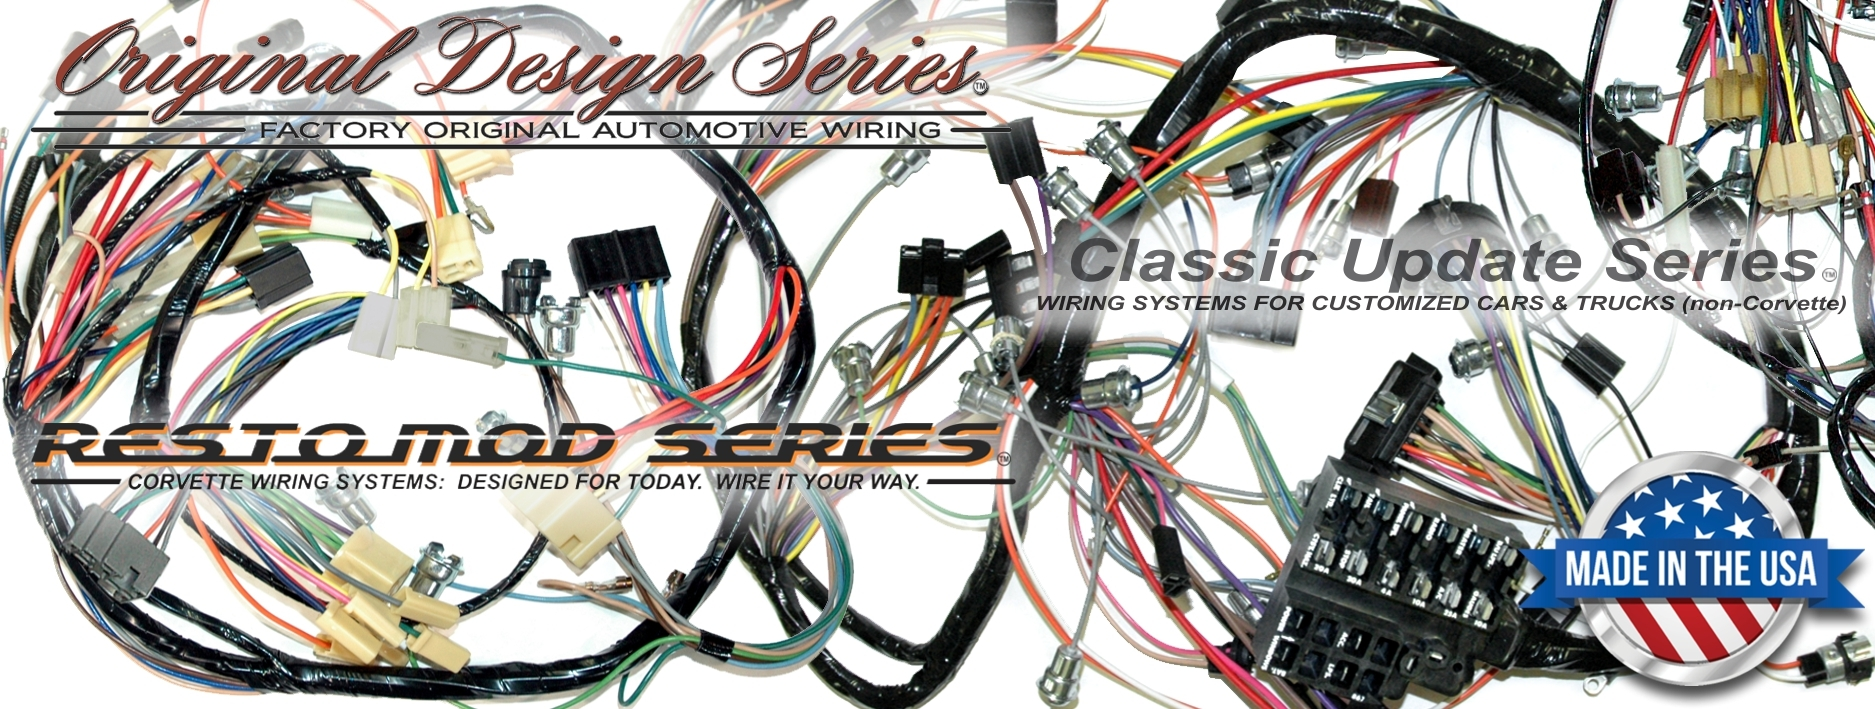 exact oem reproduction wiring harnesses and restomod wiring systems rh lectriclimited com wiring harness houston tx wiring harness how to make